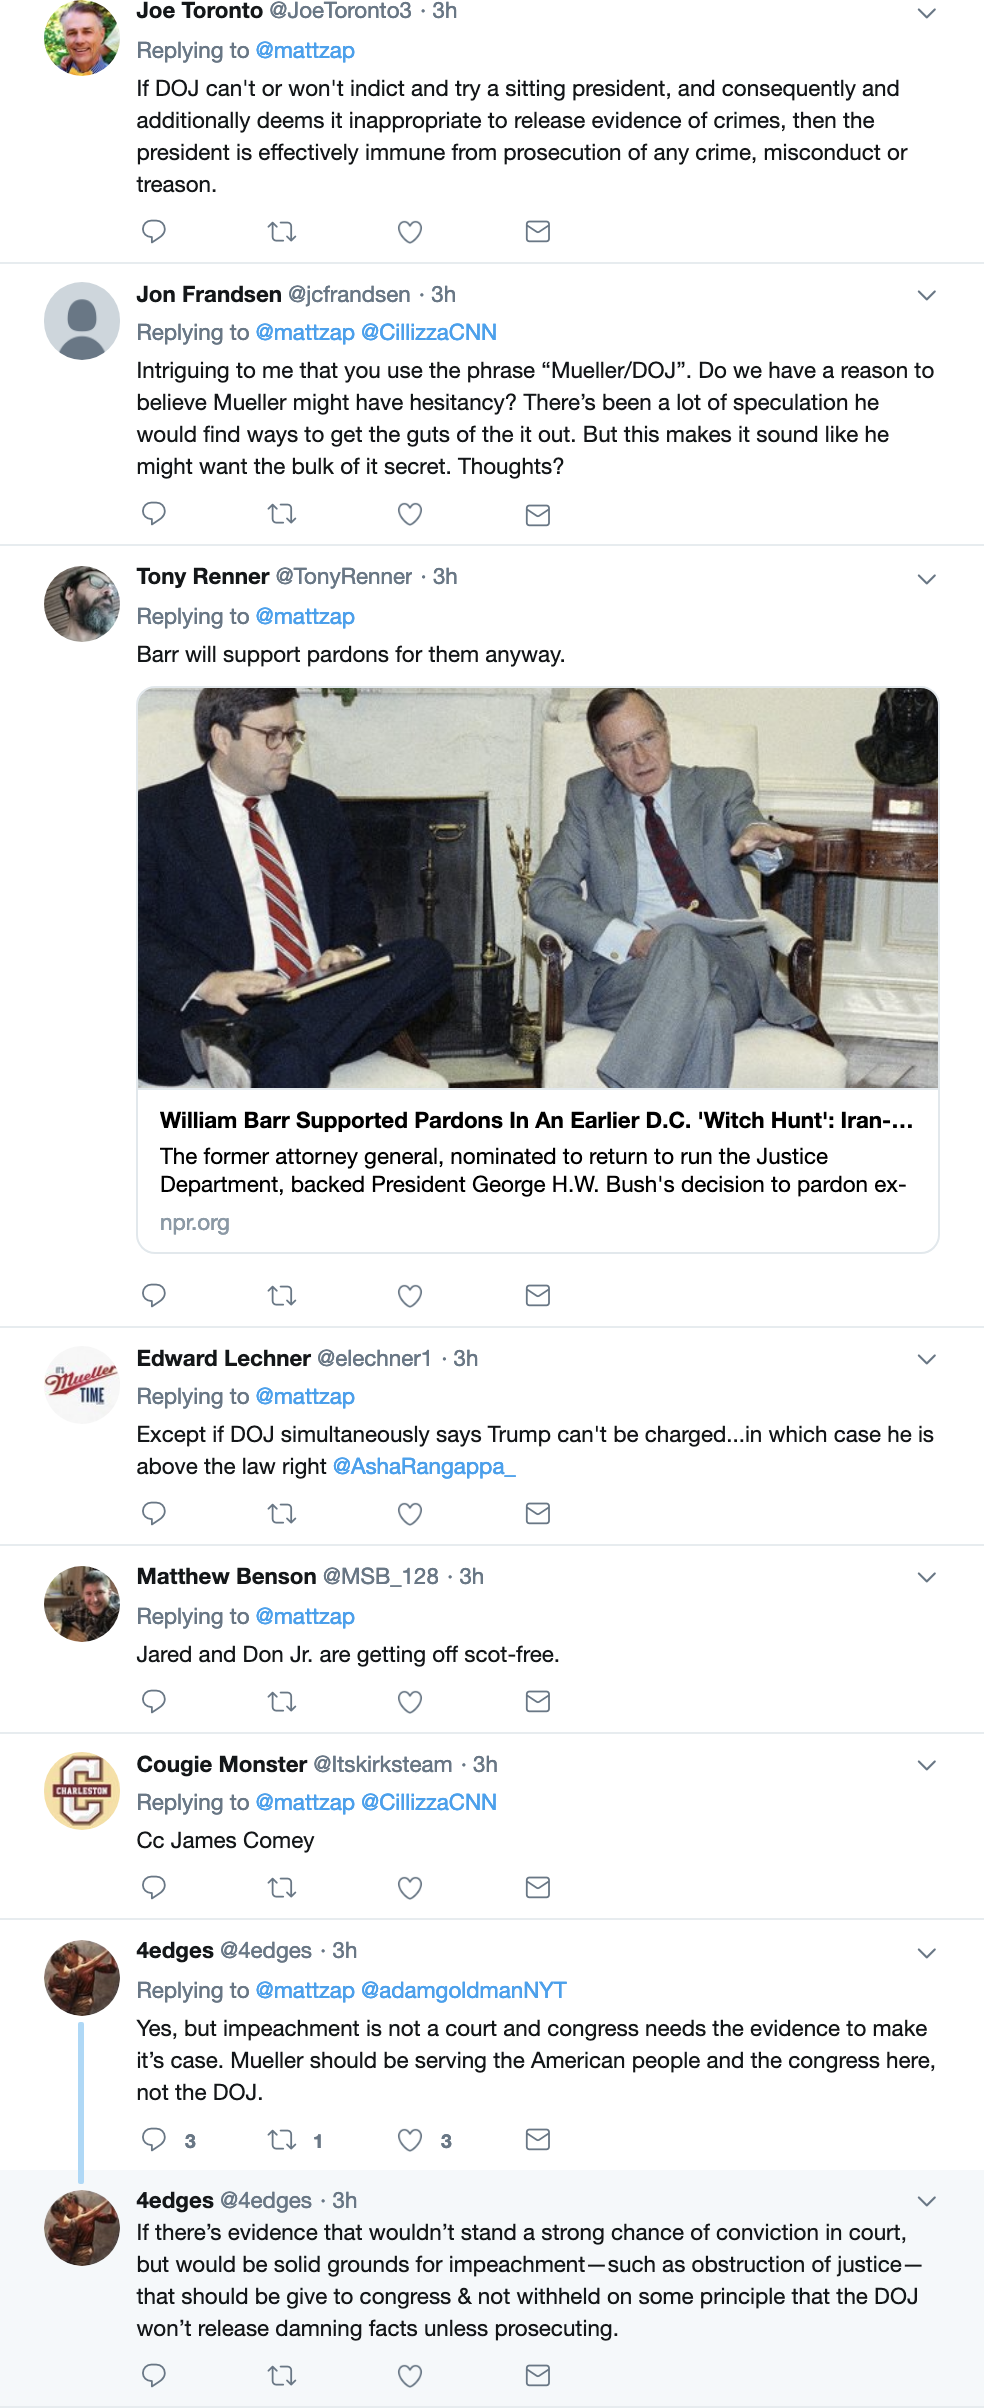 Screen-Shot-2019-02-25-at-4.01.13-PM Deputy AG Rosenstein Makes Cryptic Mueller Remarks & It's On Corruption Crime Donald Trump Election 2016 Election 2020 Mueller Politics Robert Mueller Russia Top Stories